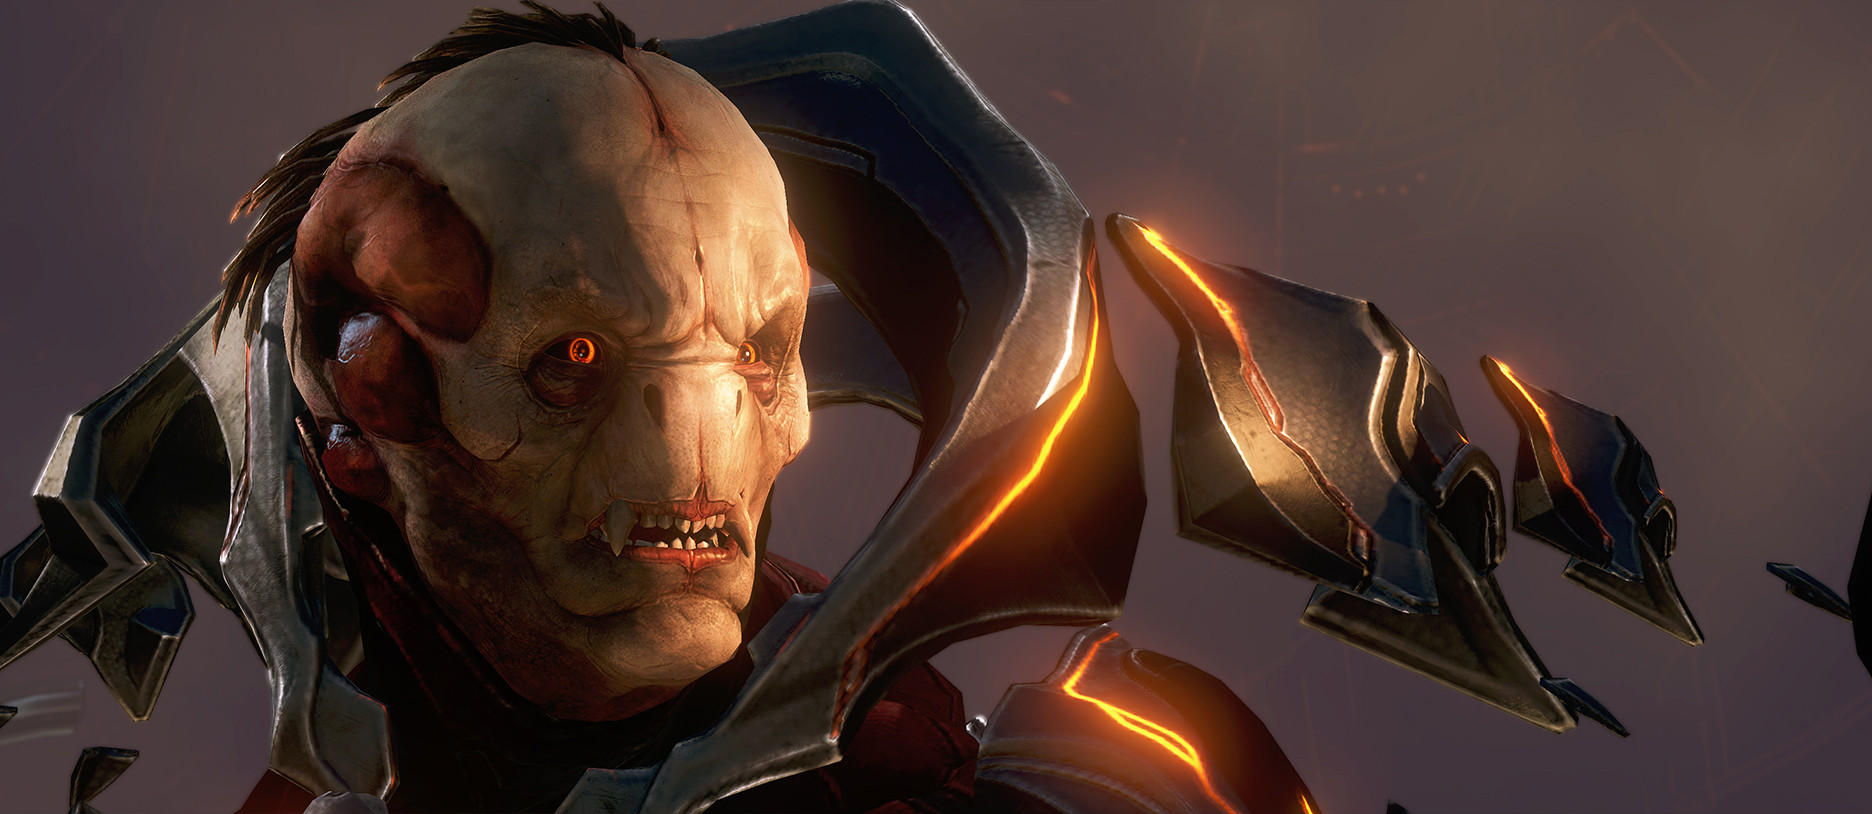 CAPTURE OF THE DIDACT - ~97,455 BCEThe Didact after being released from his cryptum on Requiem during the Battle of Requiem, July 2557.